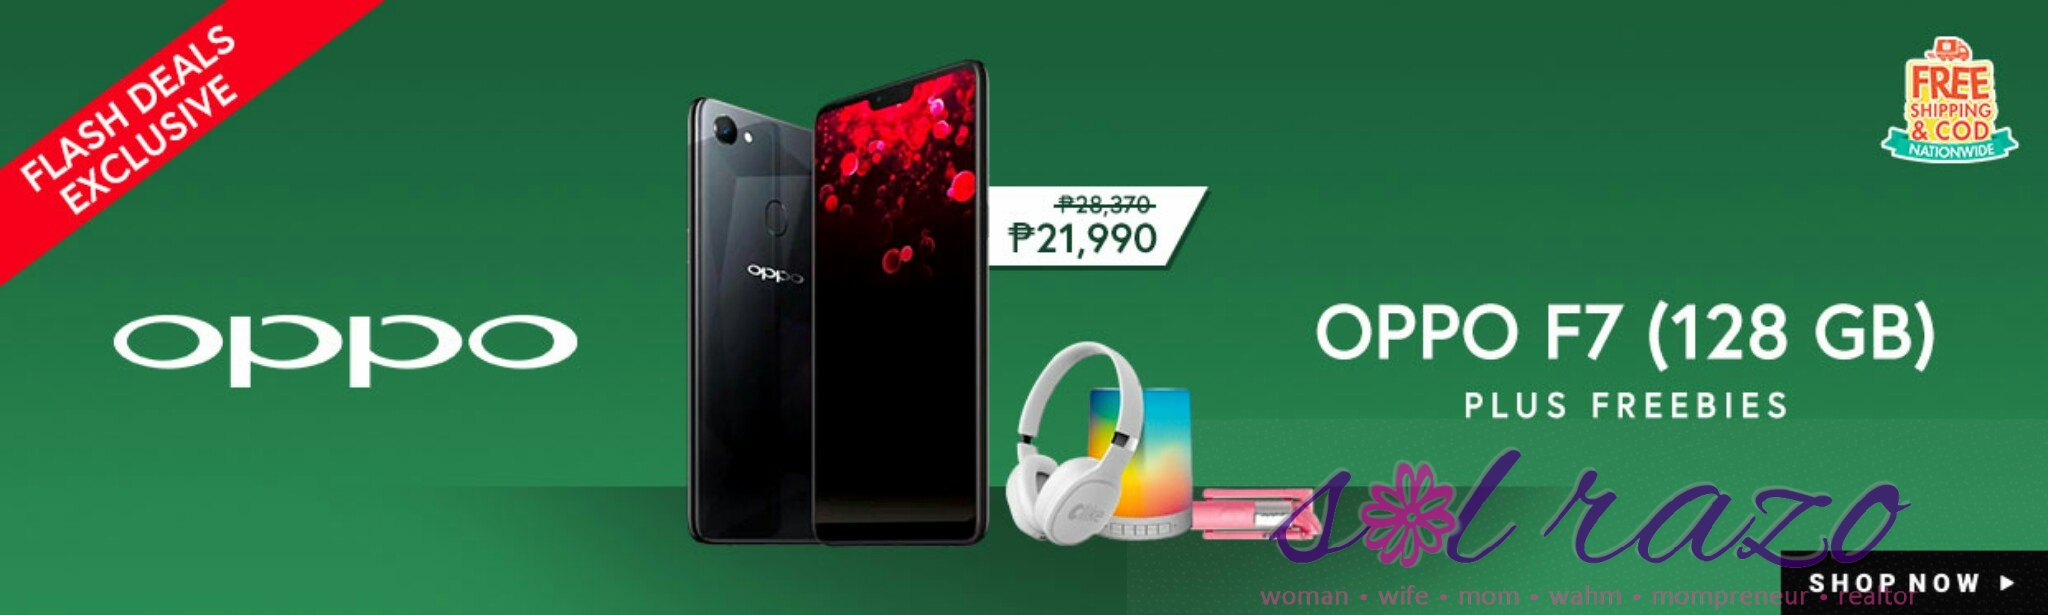 OPPO F7 128GB Diamond Black, exclusively available online on Shopee